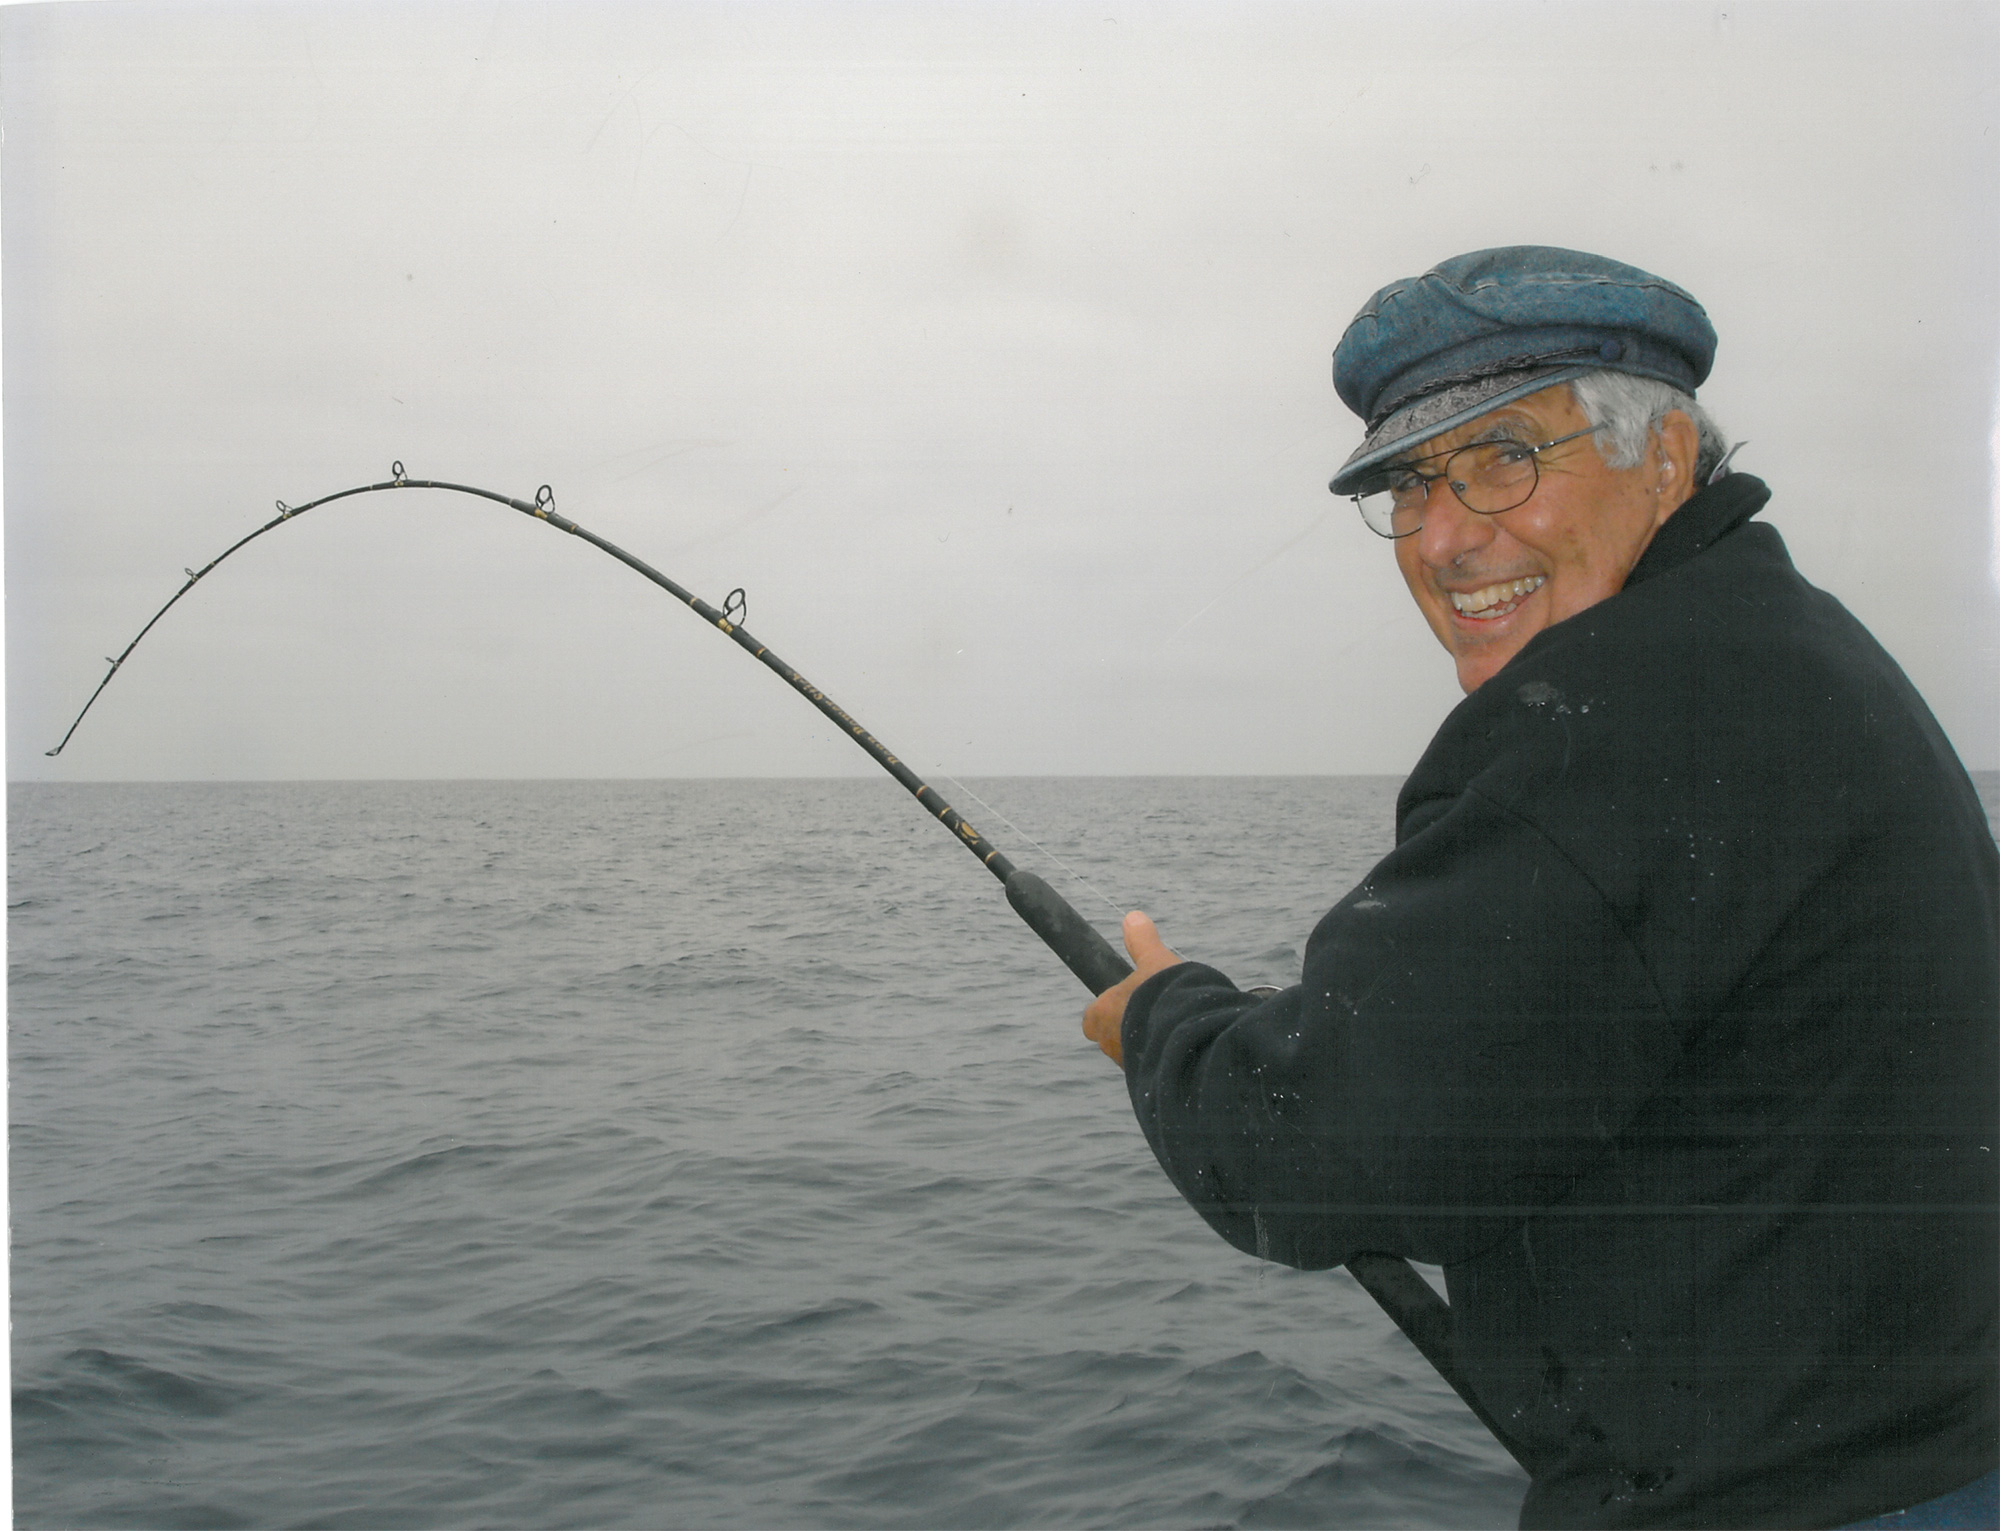 Andy loves to fish!